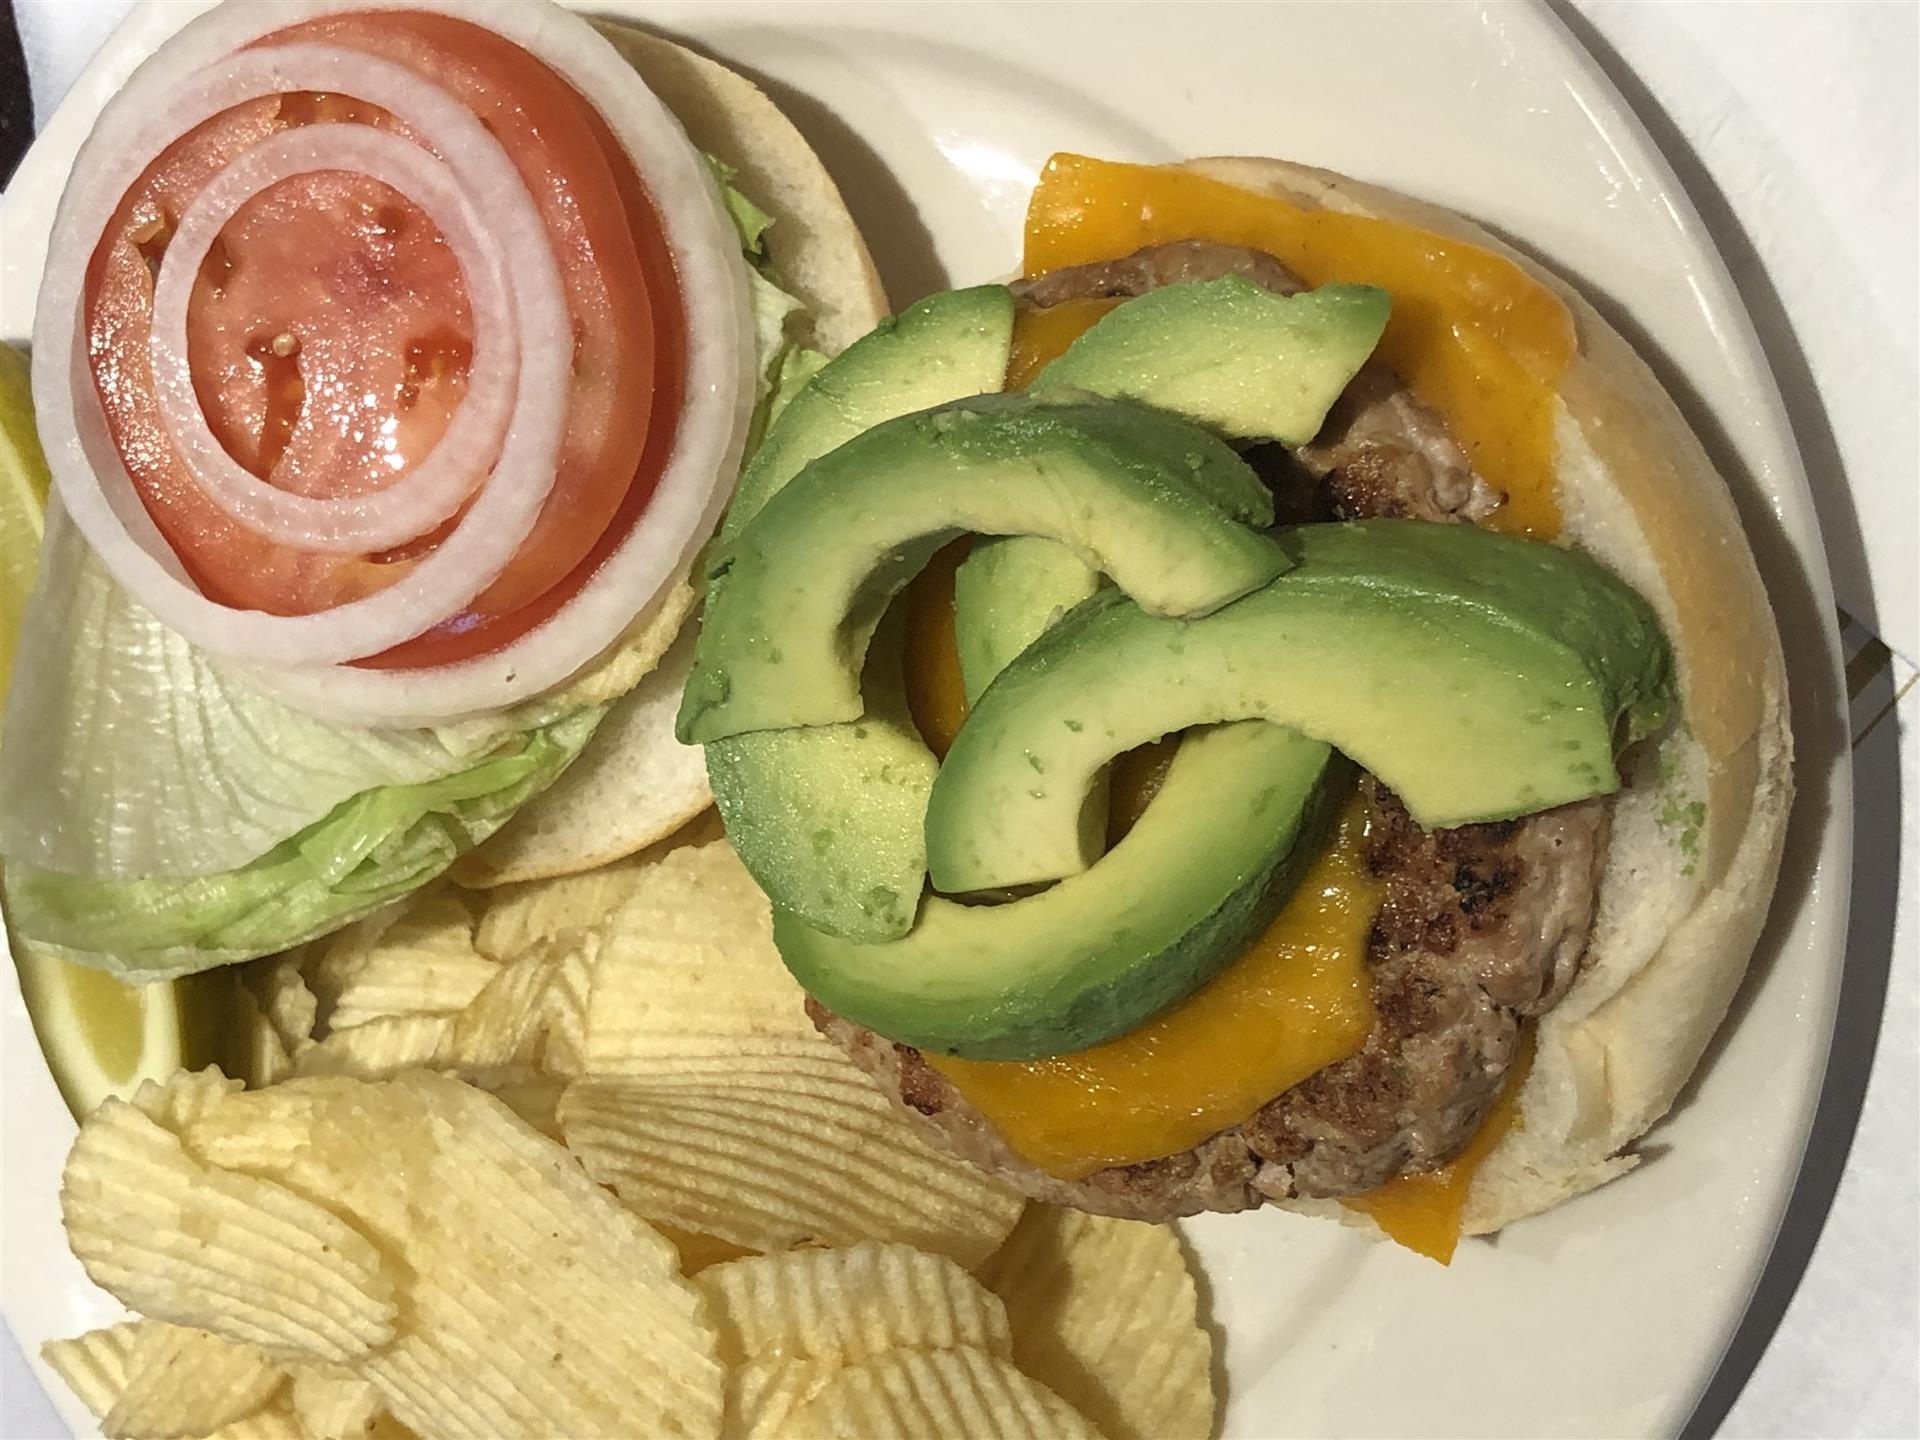 Turkey burger with avocado, tomato, lettuce, onion